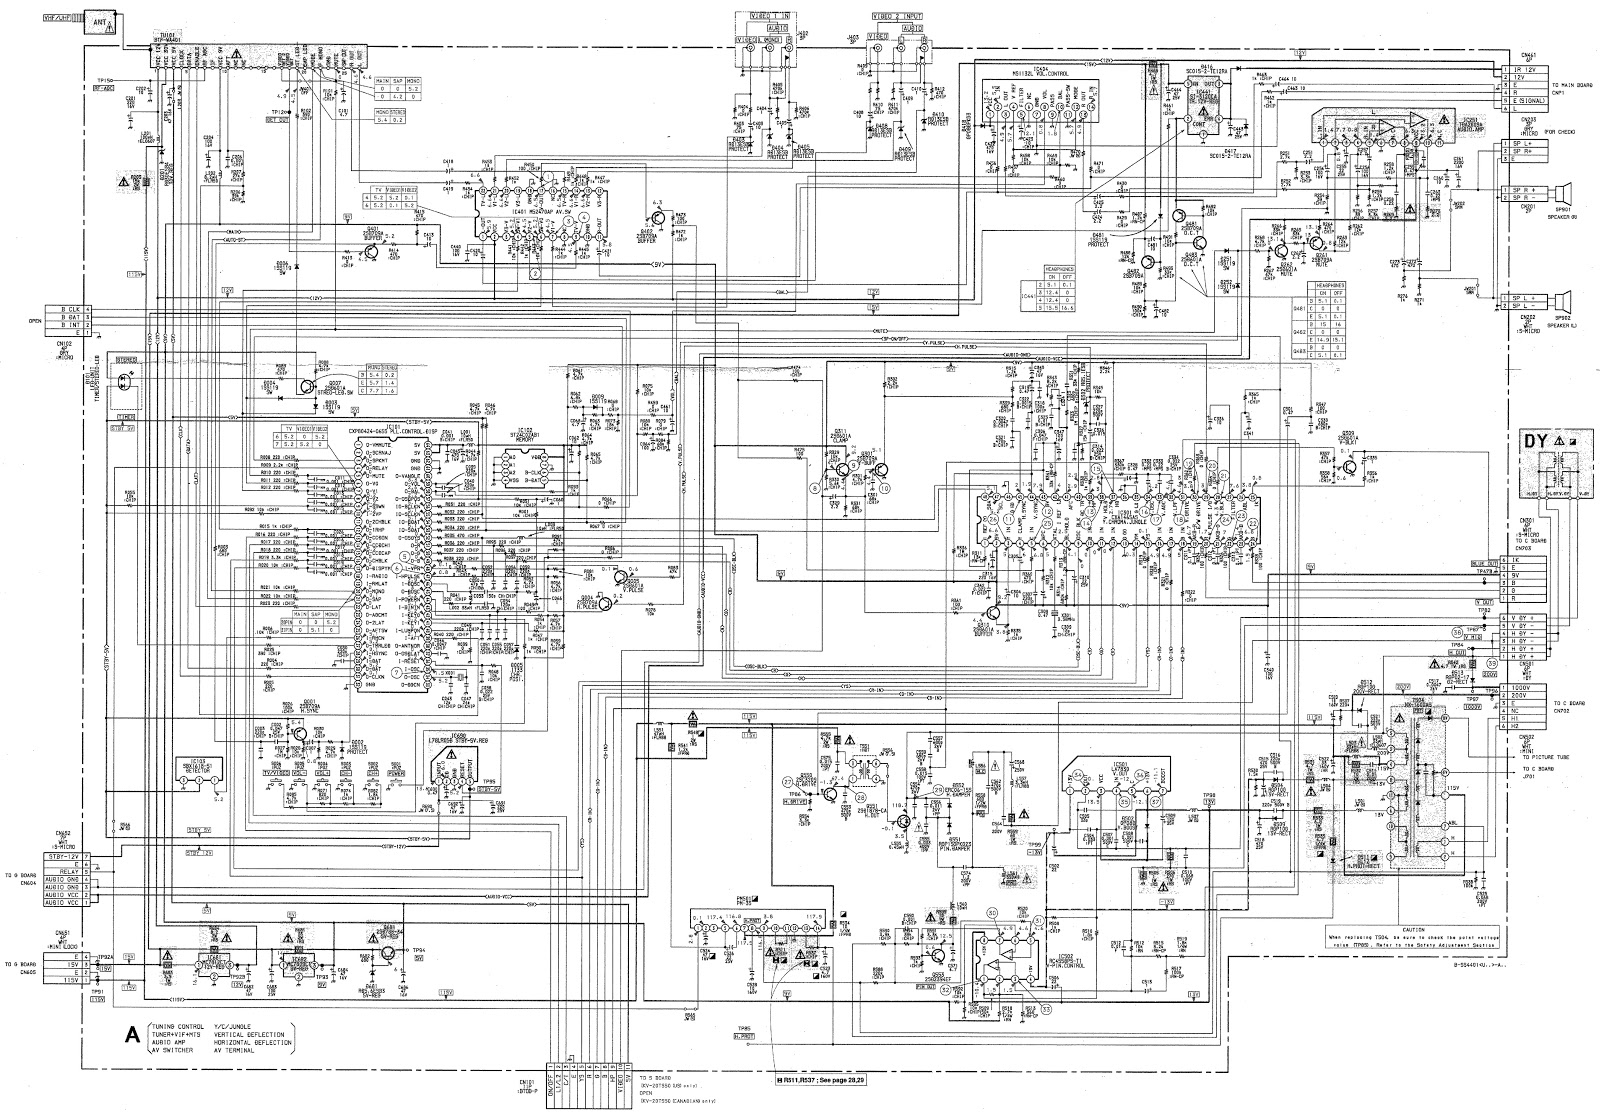 small resolution of sony tv circuit diagram moreover tv schematic circuit diagram also sony tv circuit diagram moreover tv